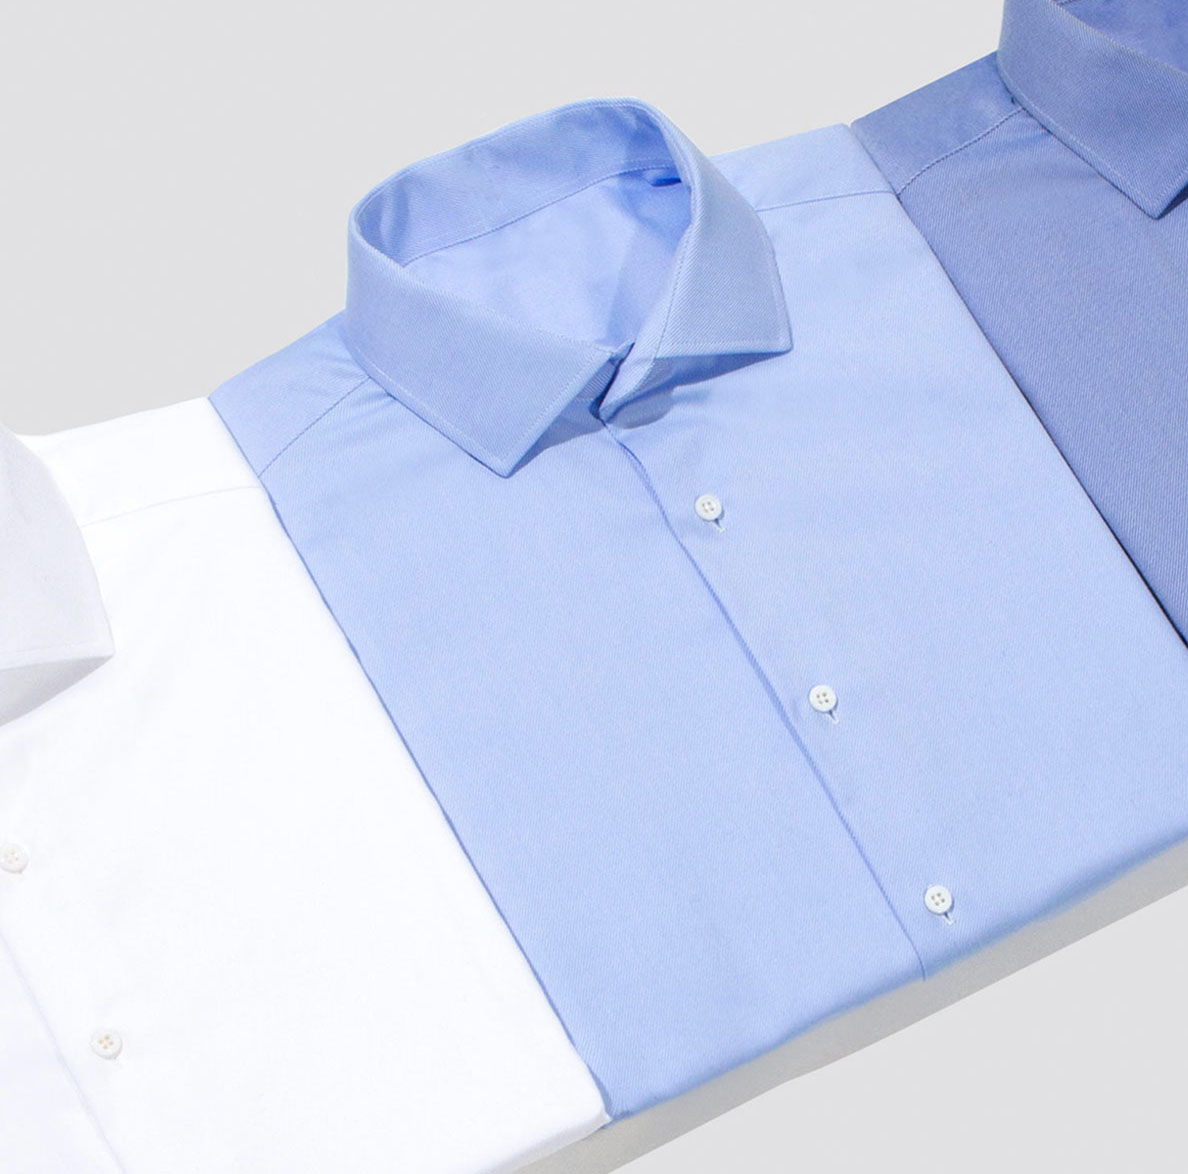 A pack of shirts